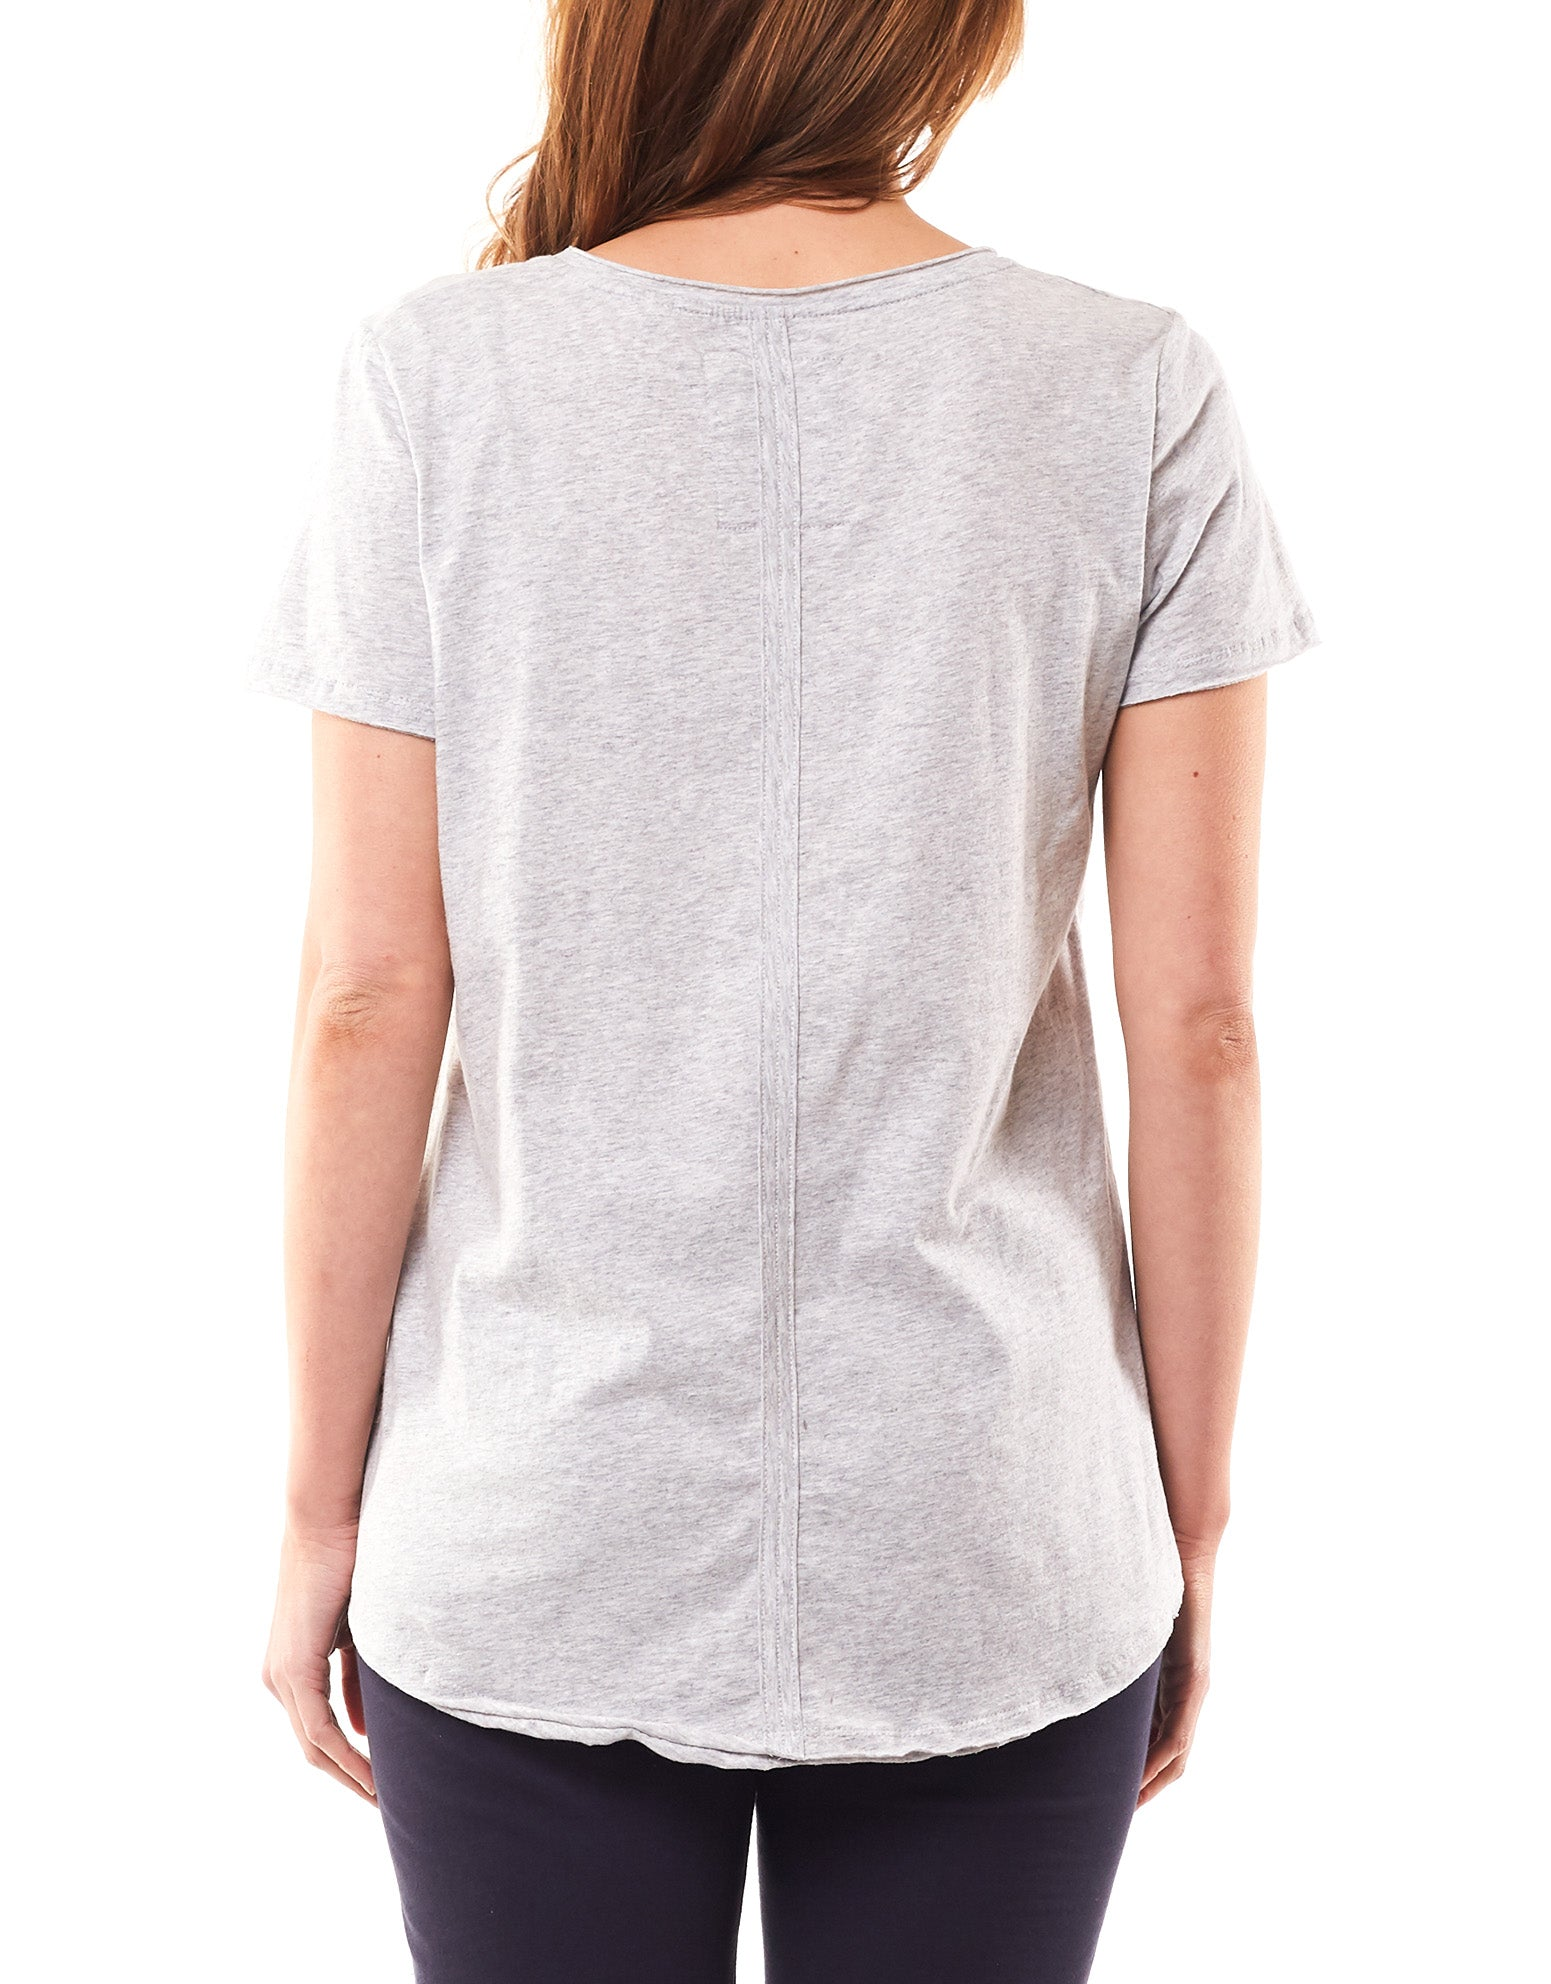 Elm - Fundamental Vee Tee - Grey Marle